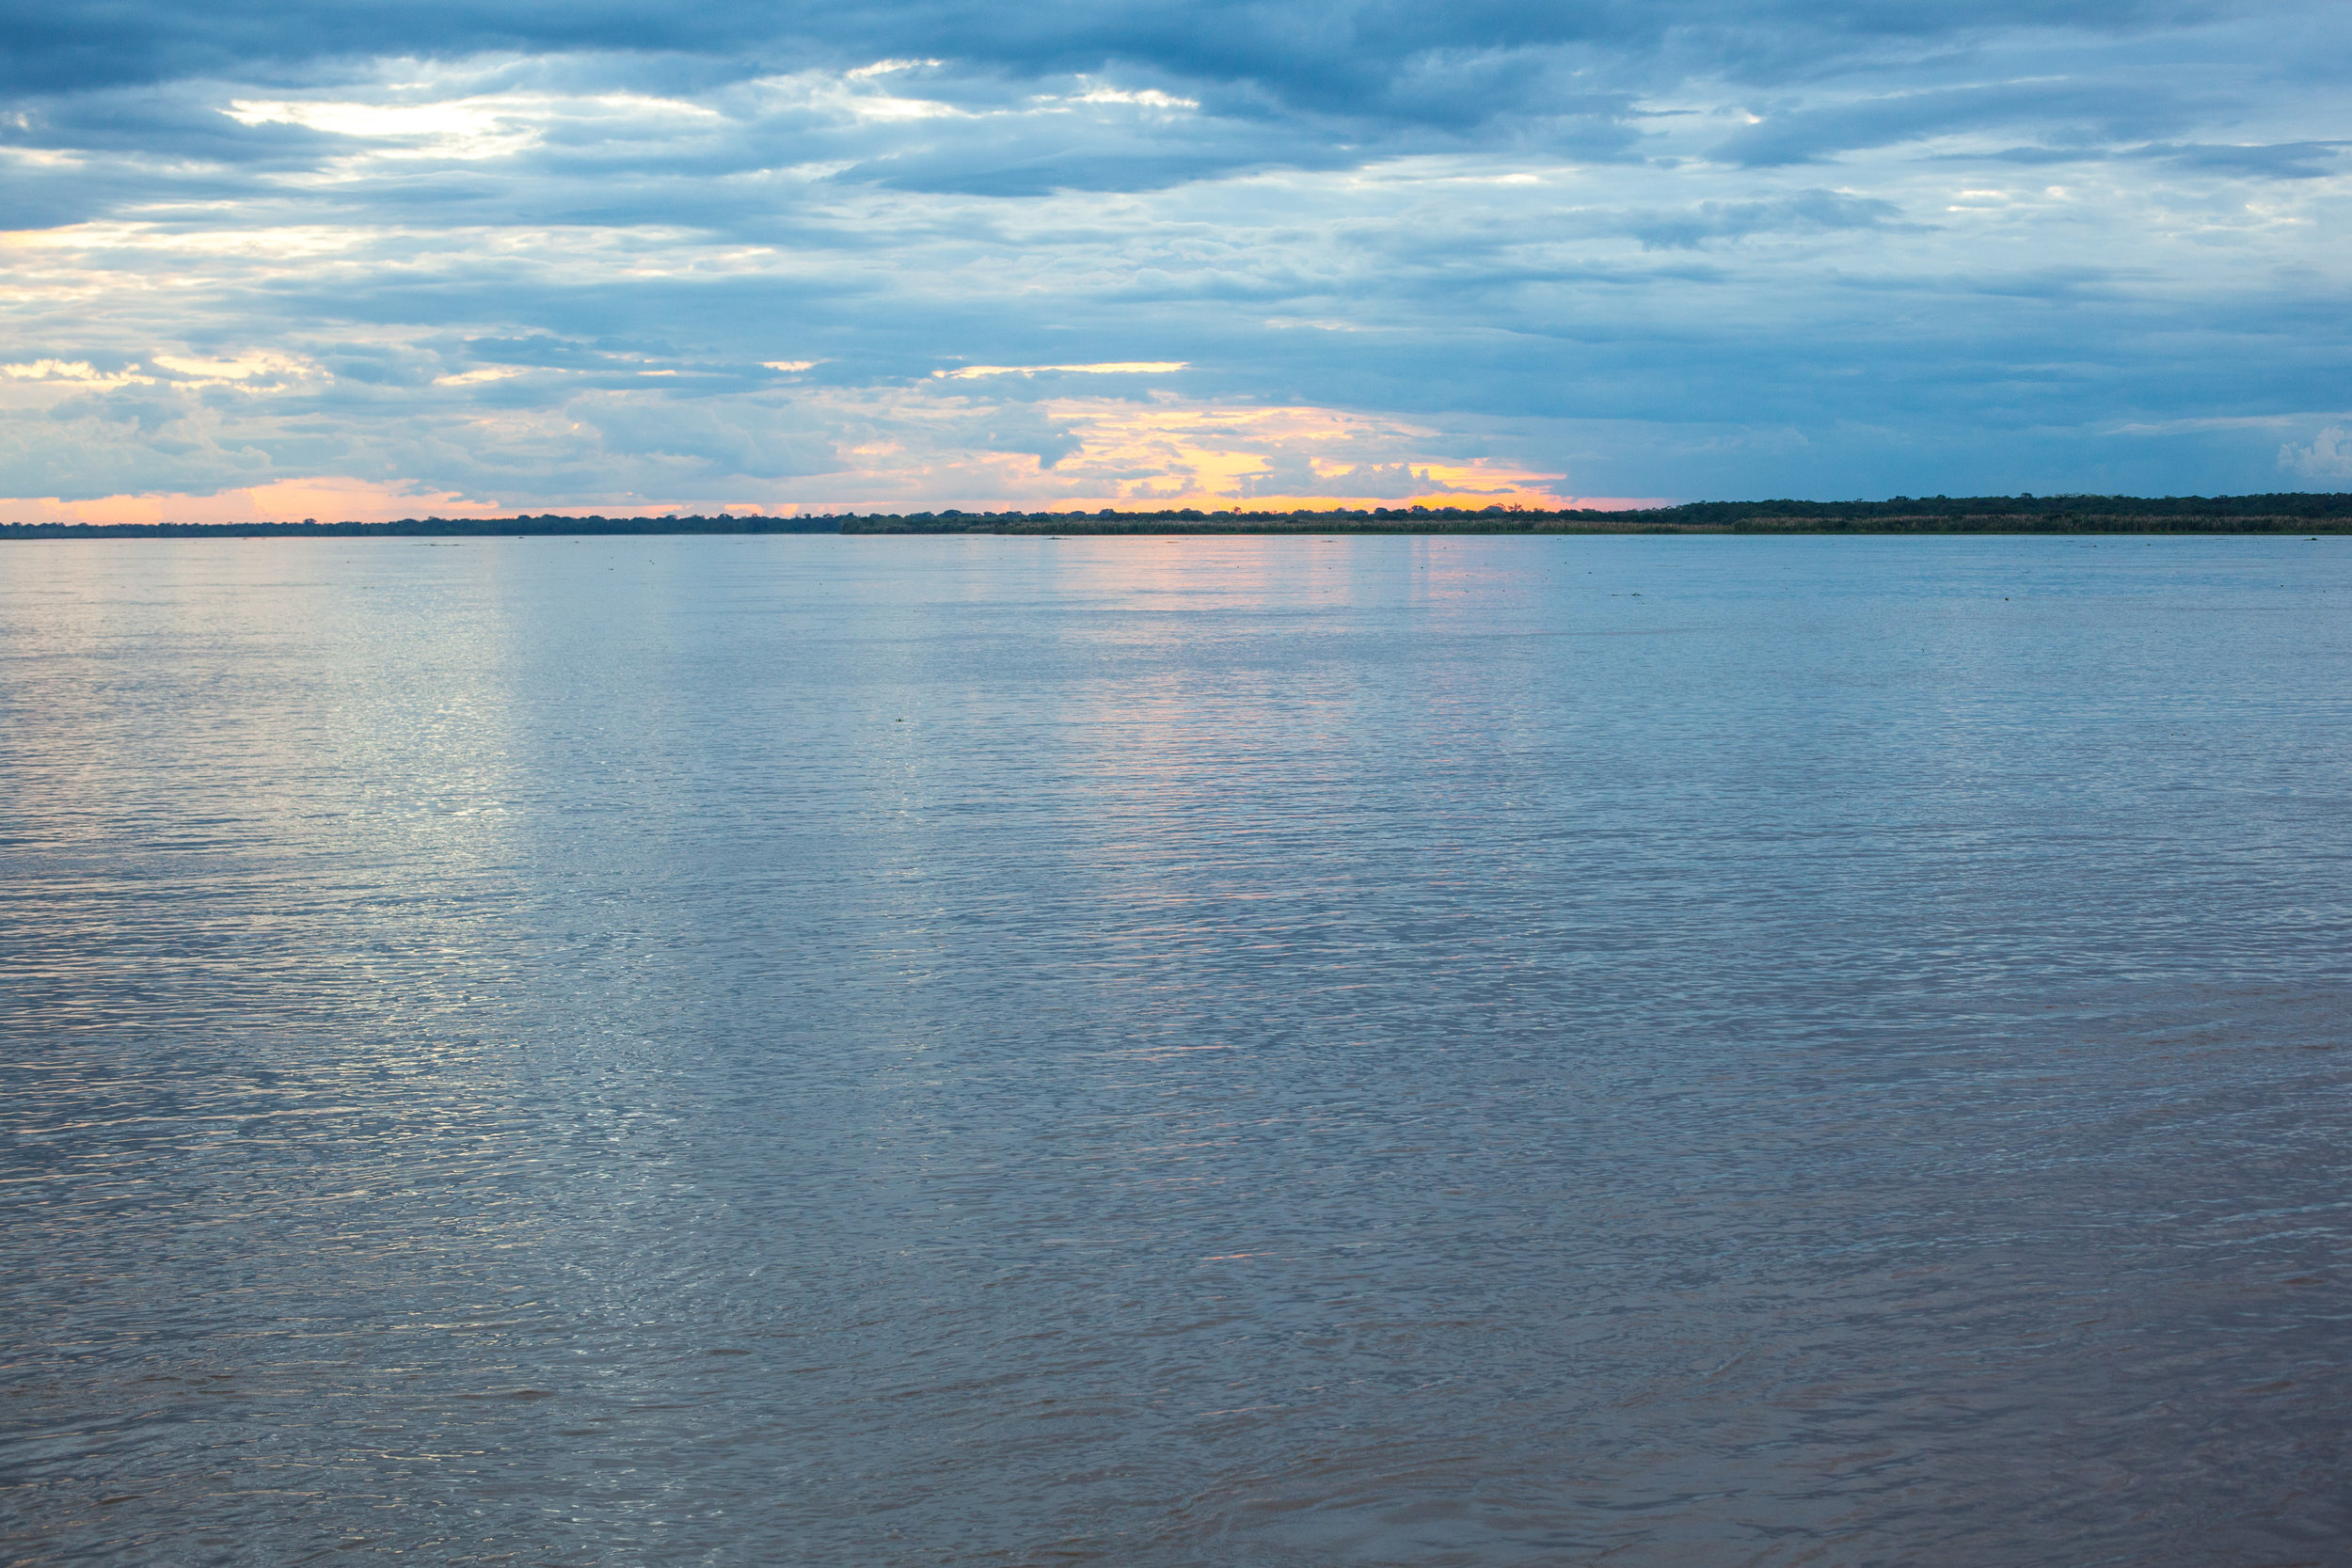 A calming photo of the Amazon river in Peru at sunset.